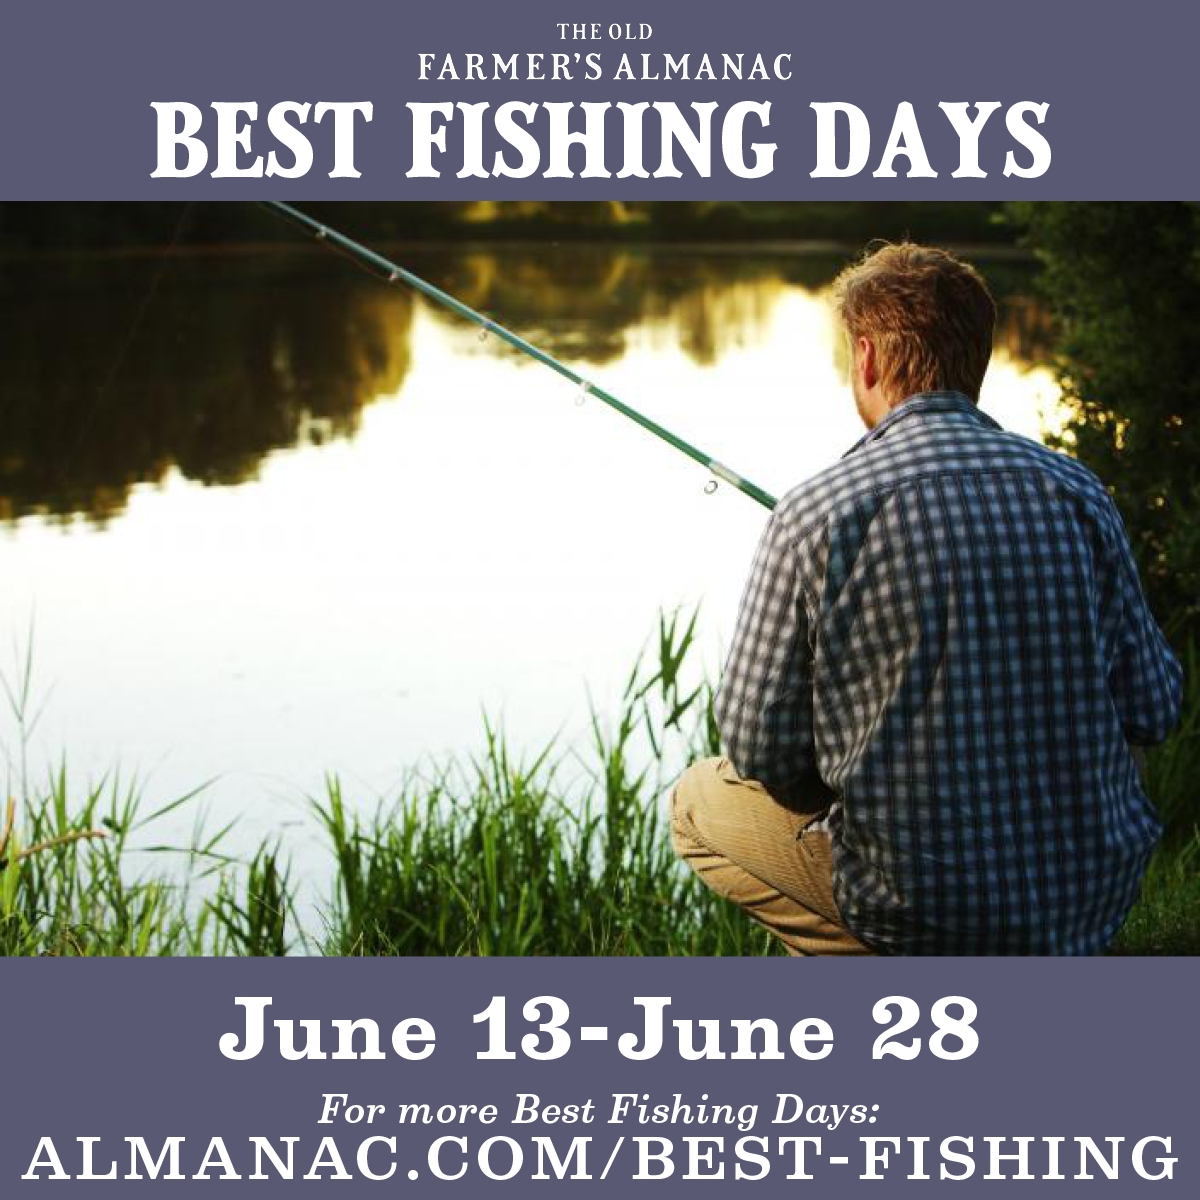 Fishing Calendar For 2020 | Best Fishing Days, Farmers